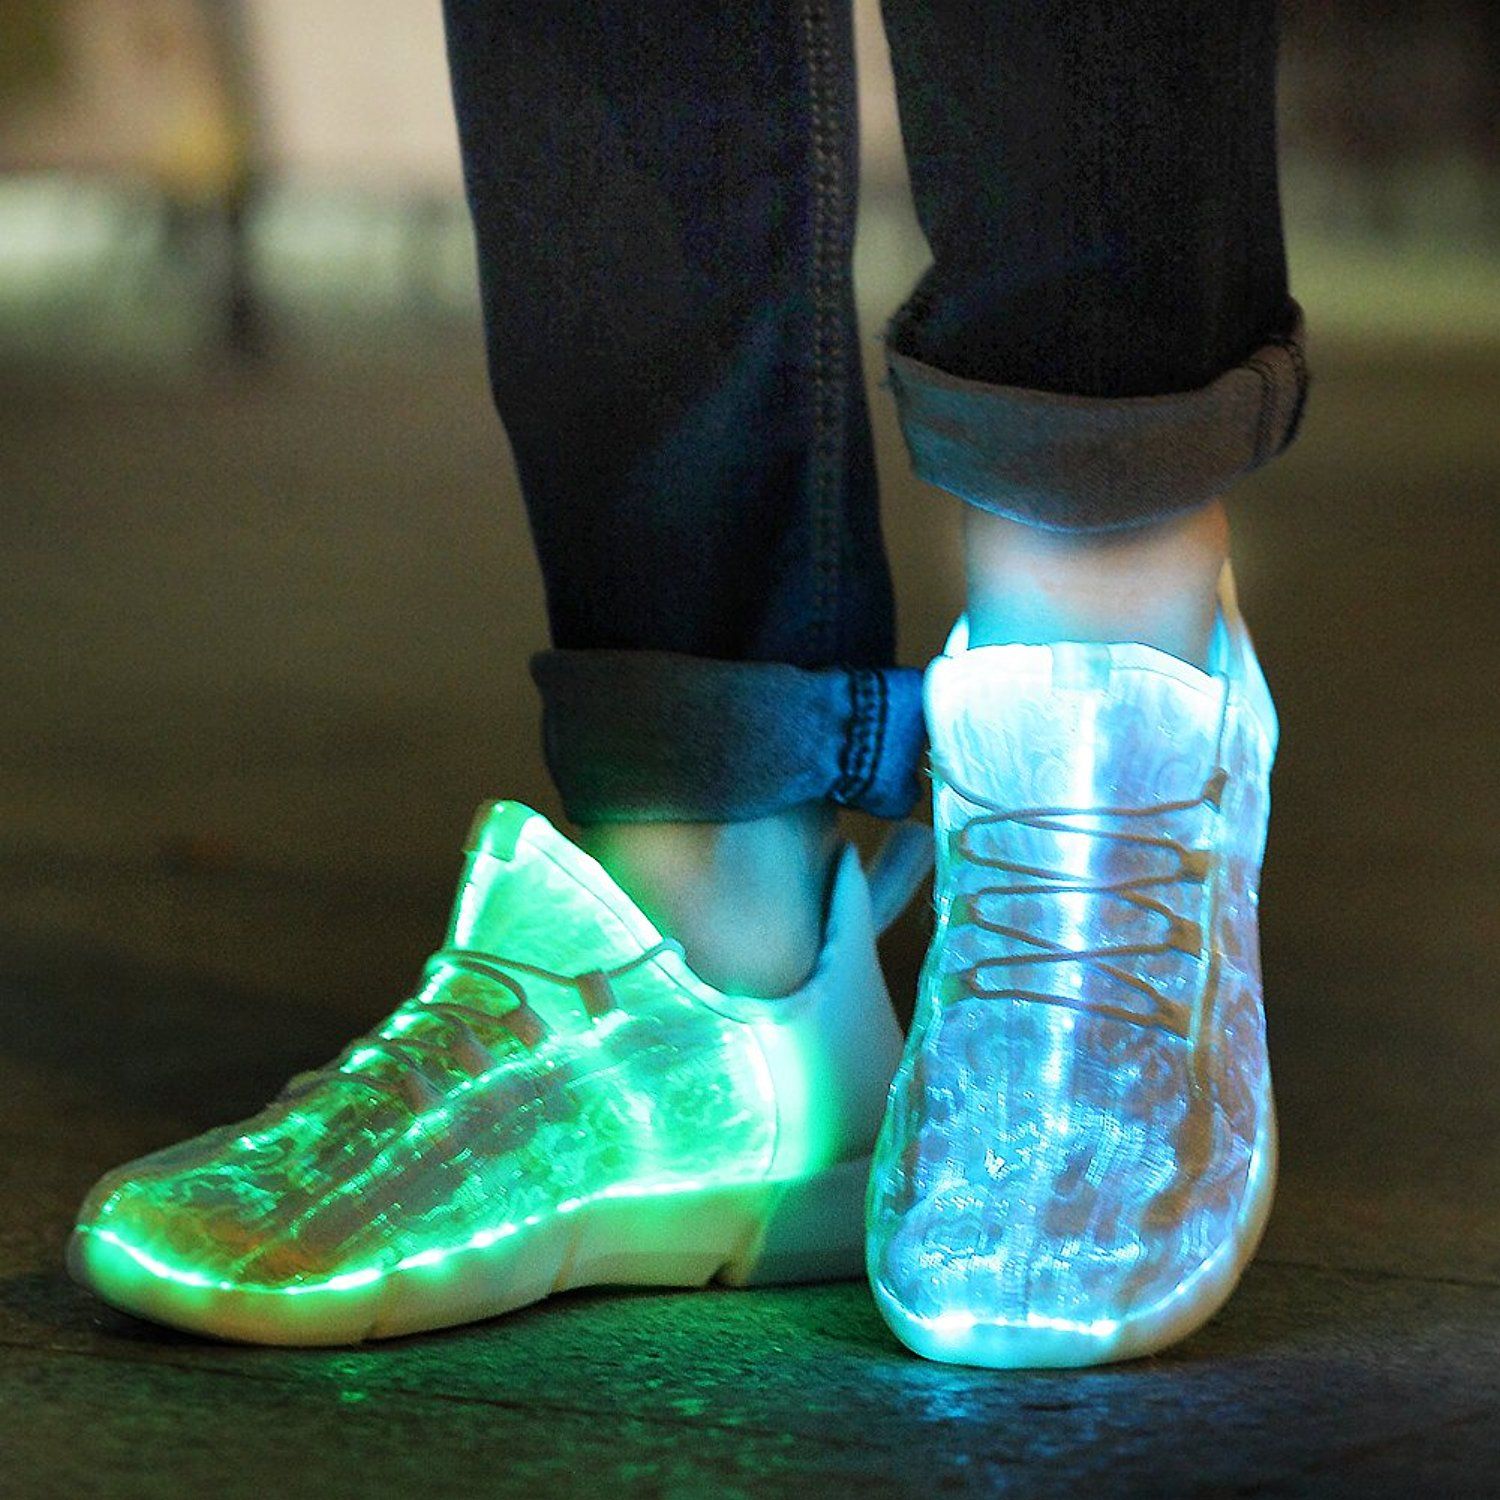 Ypyuna Luminous Sneakers Glowing Light Up Shoes For Kids